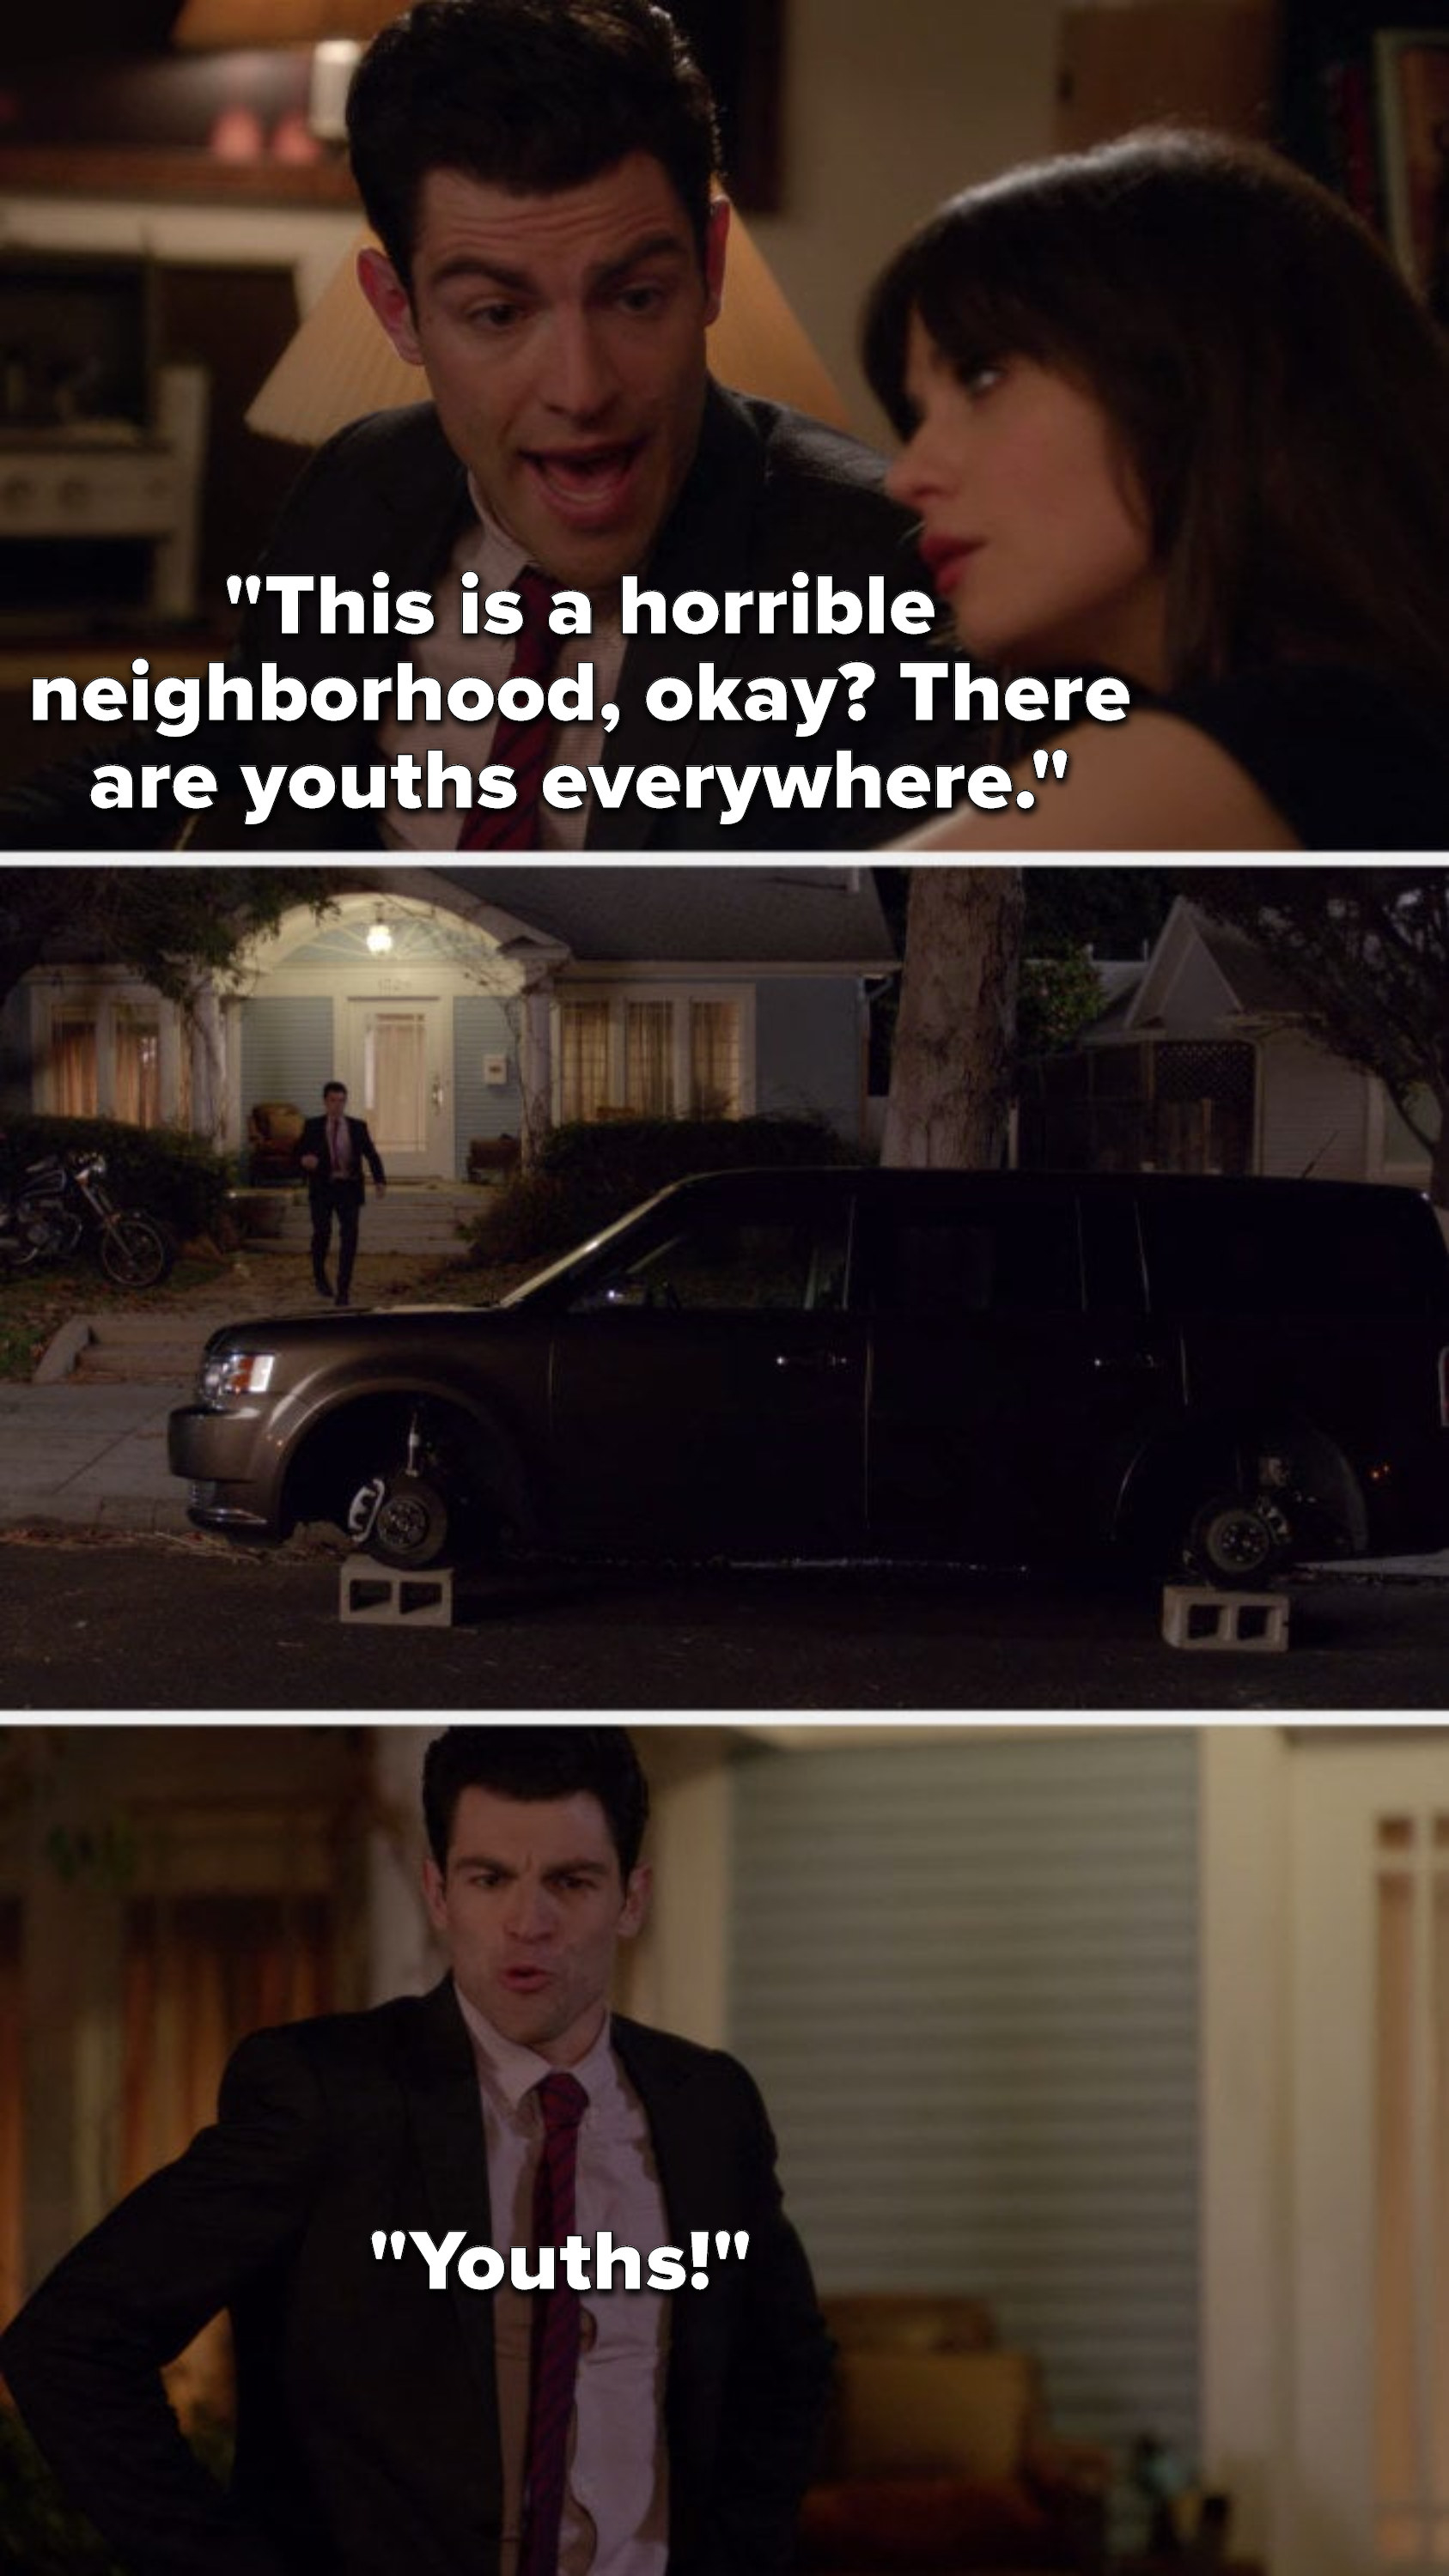 Schmidt says, This is a horrible neighborhood, okay, there are youths everywhere, and then he sees his tires are gone and he yells, Youths